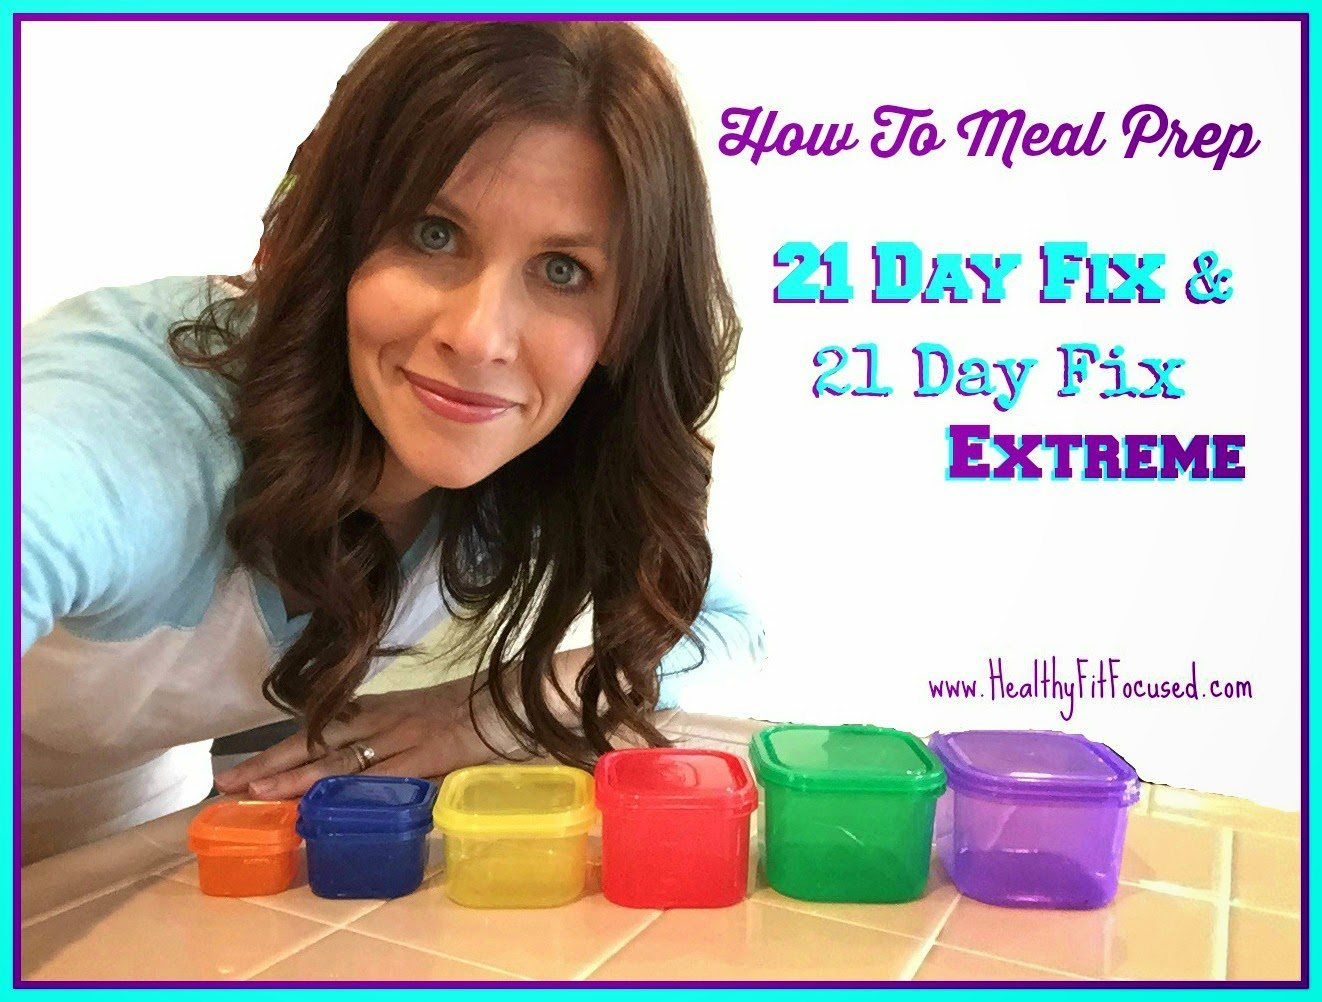 How to Meal Prep for the 21 Day Fix and 21 Day Fix Extreme, Step by Step Guide, www.HealthyFitFocused.com